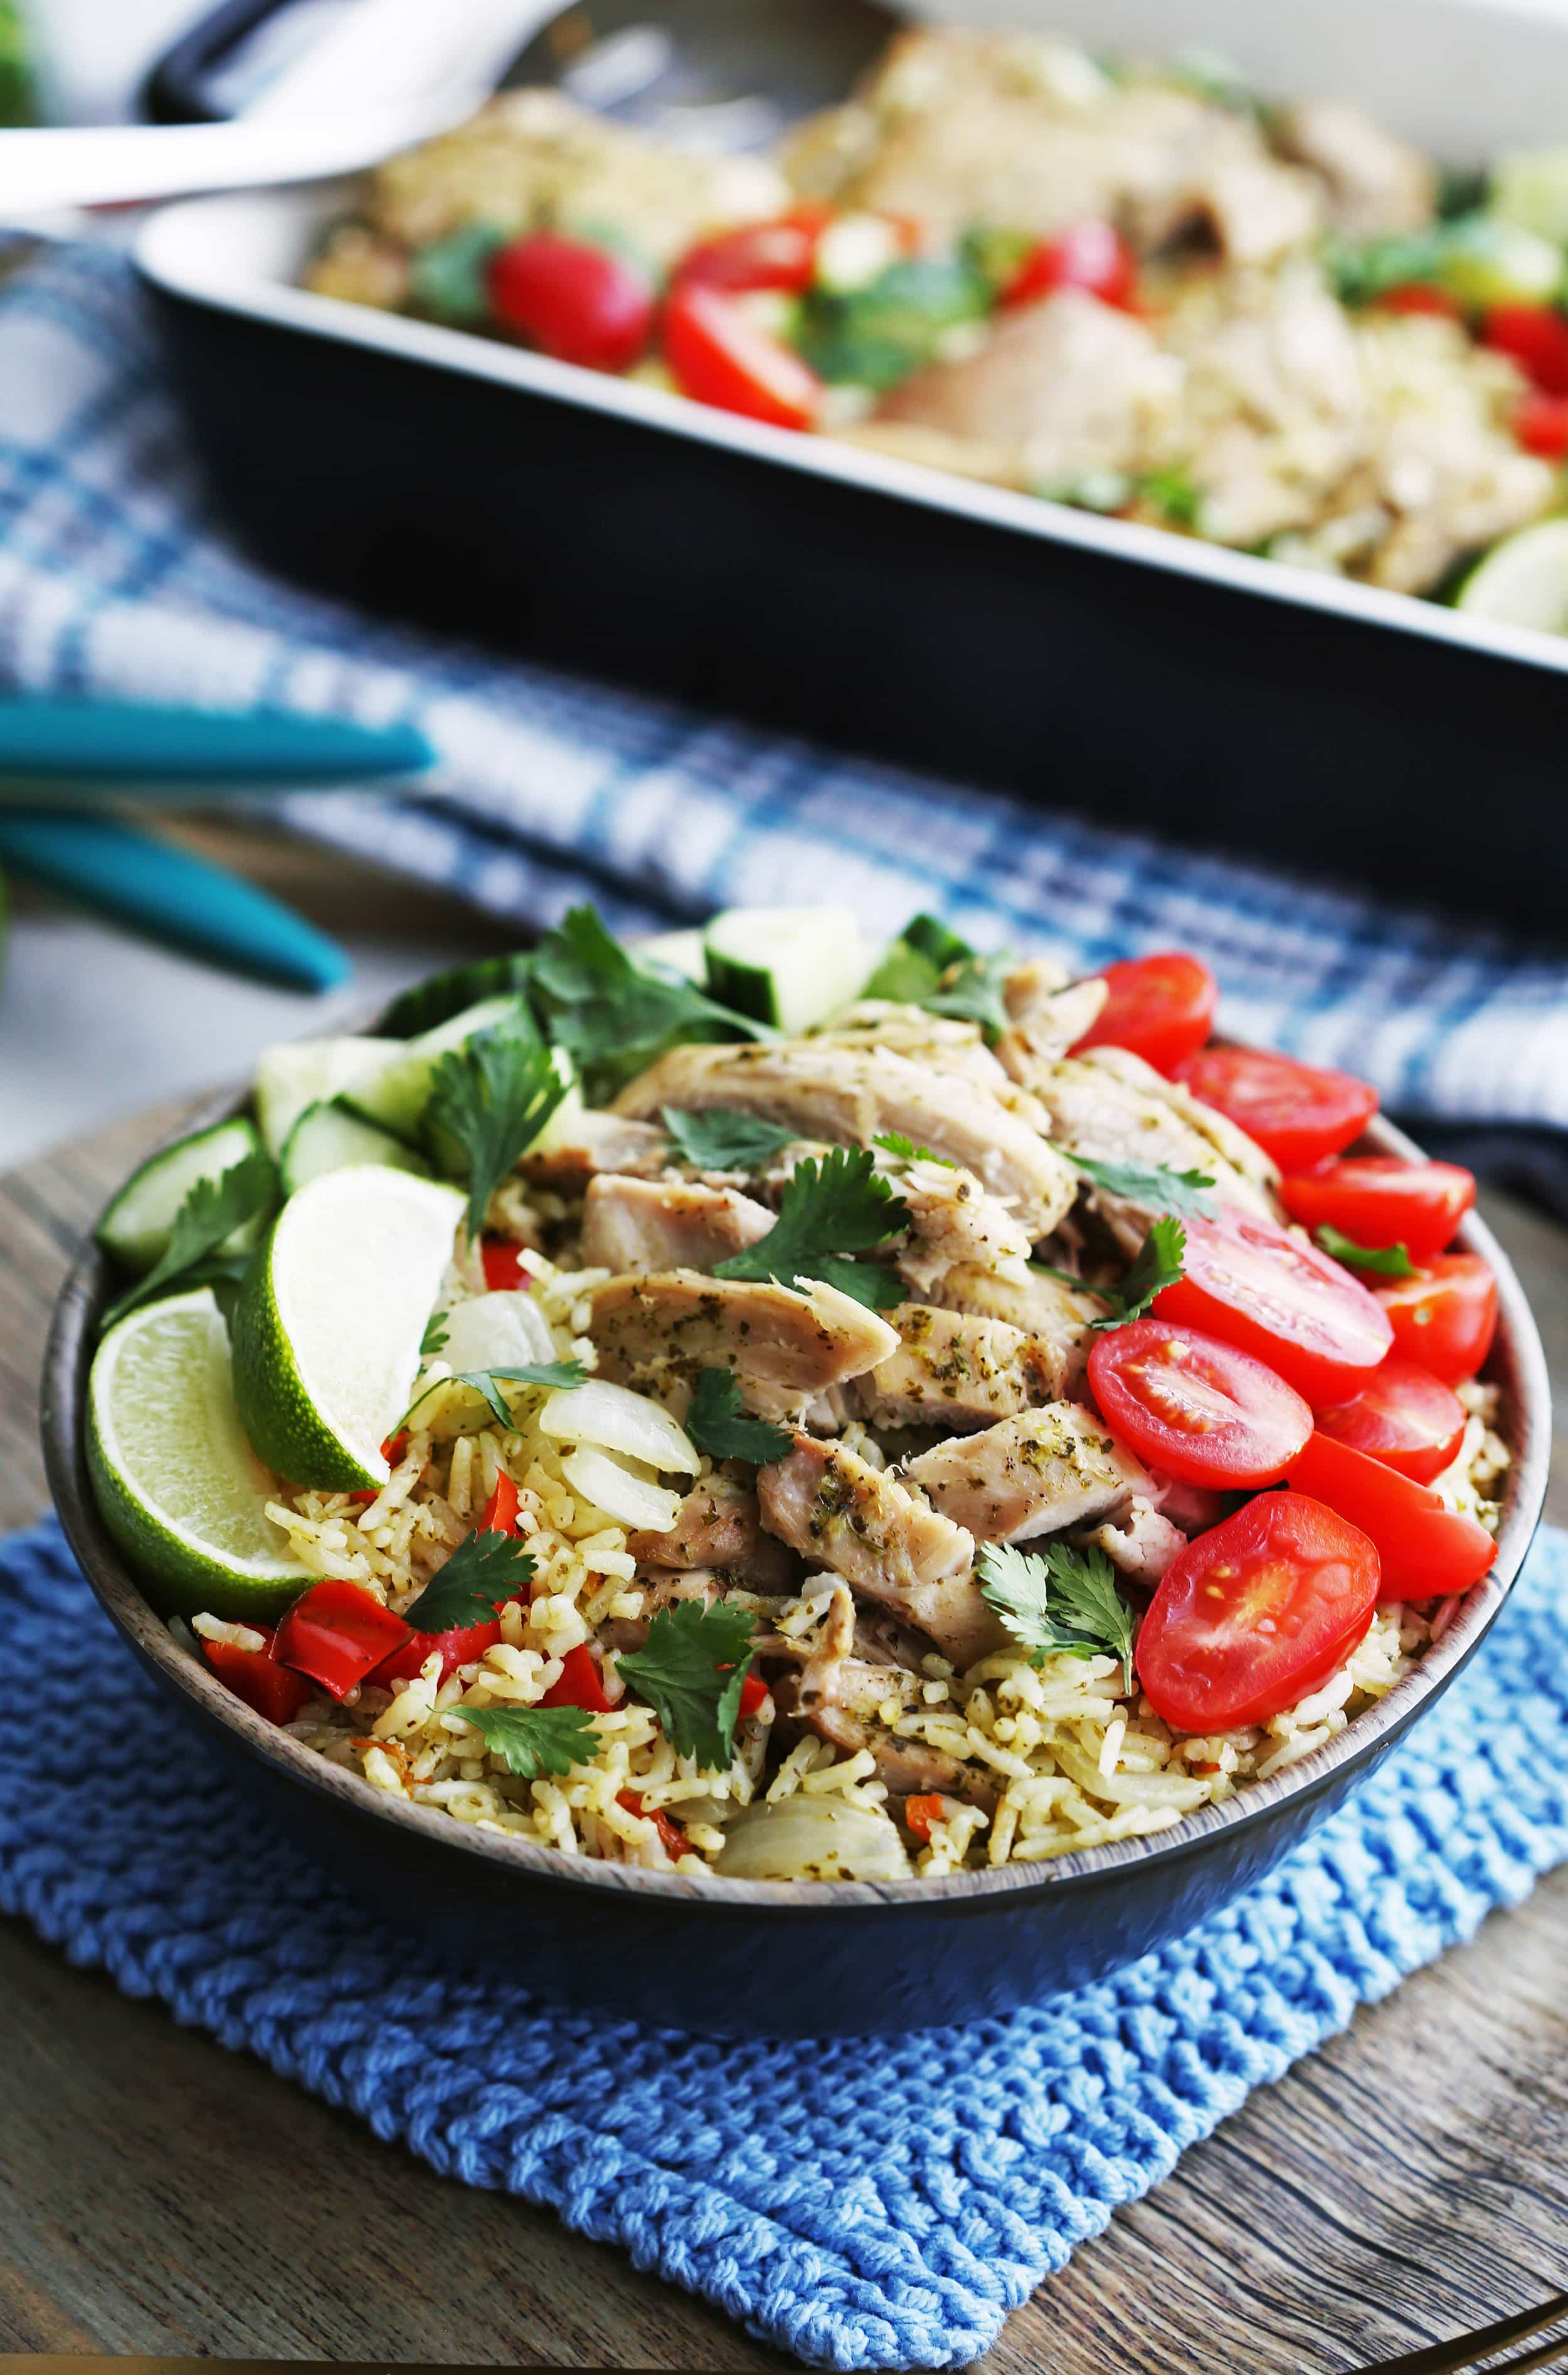 A full bowl of Instant Pot Cilantro Lime Chicken and Rice with fresh tomatoes, cilantro, cucumber, and lime wedges.